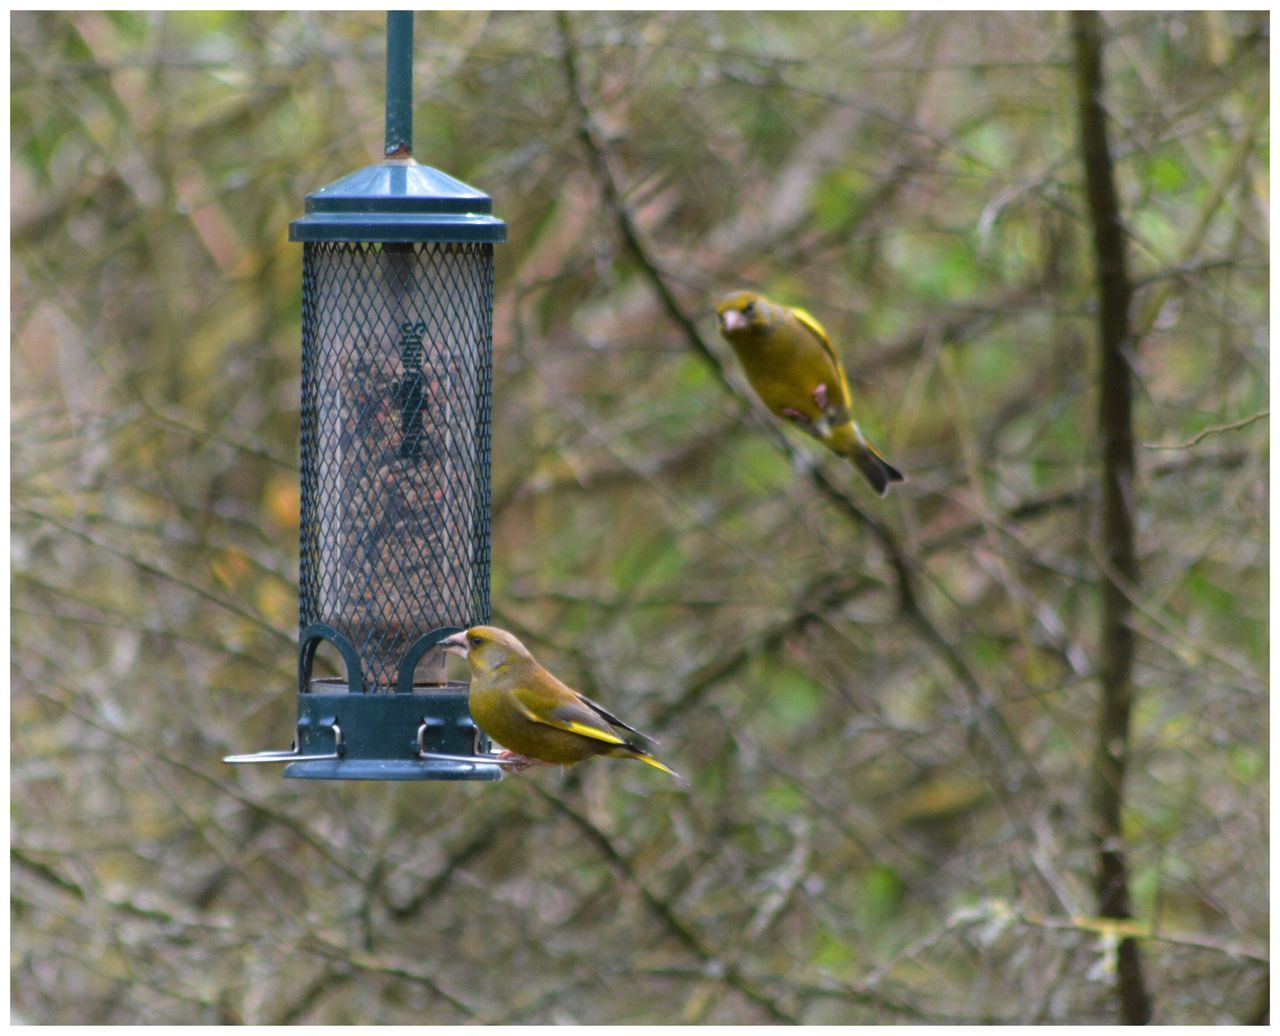 bird feeder, bird, animals in the wild, animal themes, focus on foreground, no people, animal wildlife, hanging, perching, day, outdoors, bluetit, one animal, bare tree, great tit, spread wings, nature, close-up